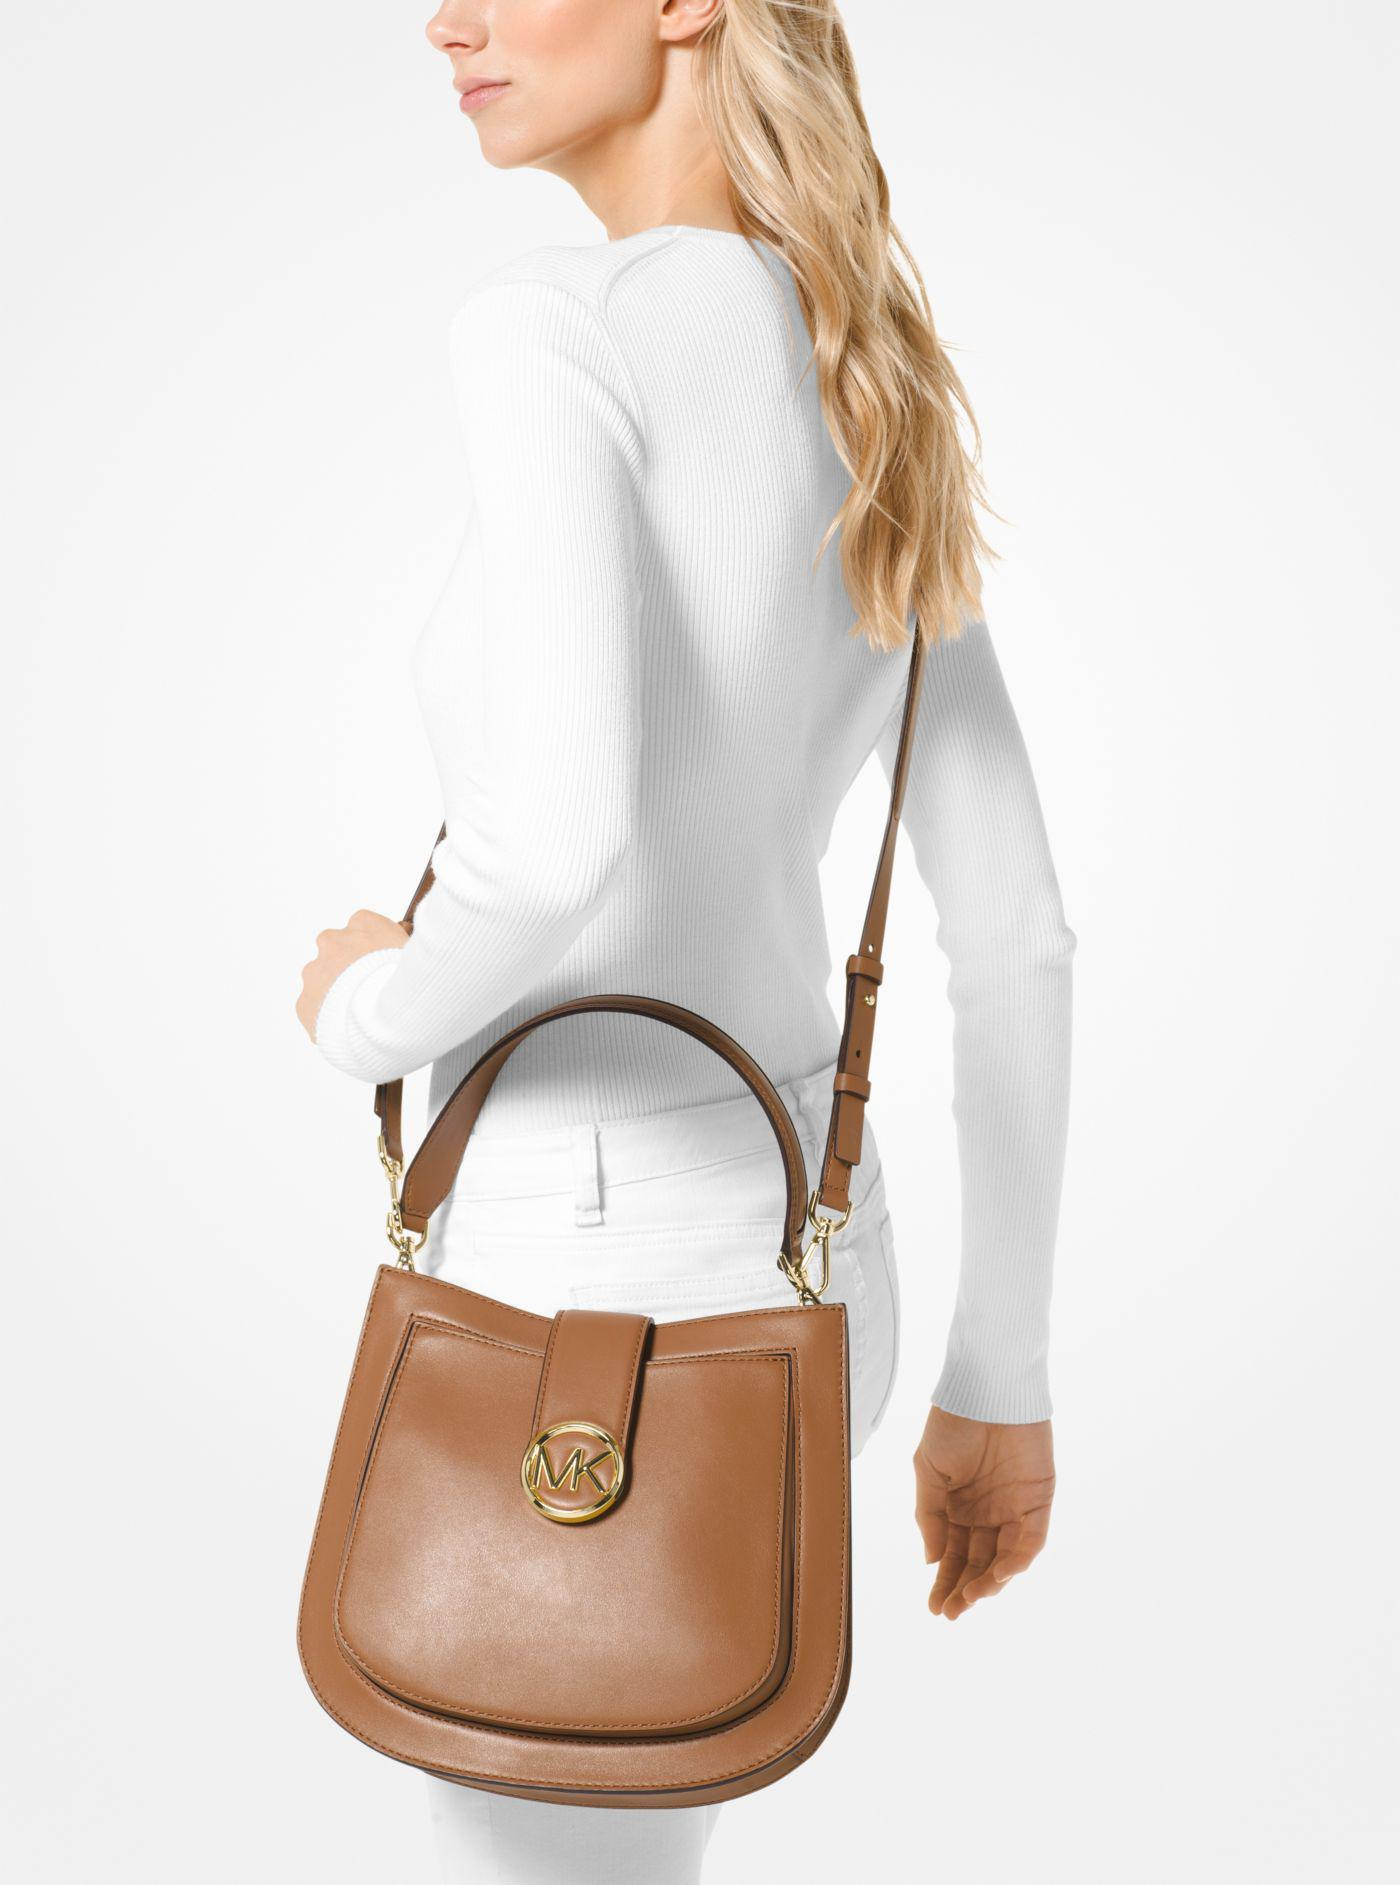 252b9c7bc91a Lyst - Michael Kors Lillie Medium Leather Shoulder Bag in Brown